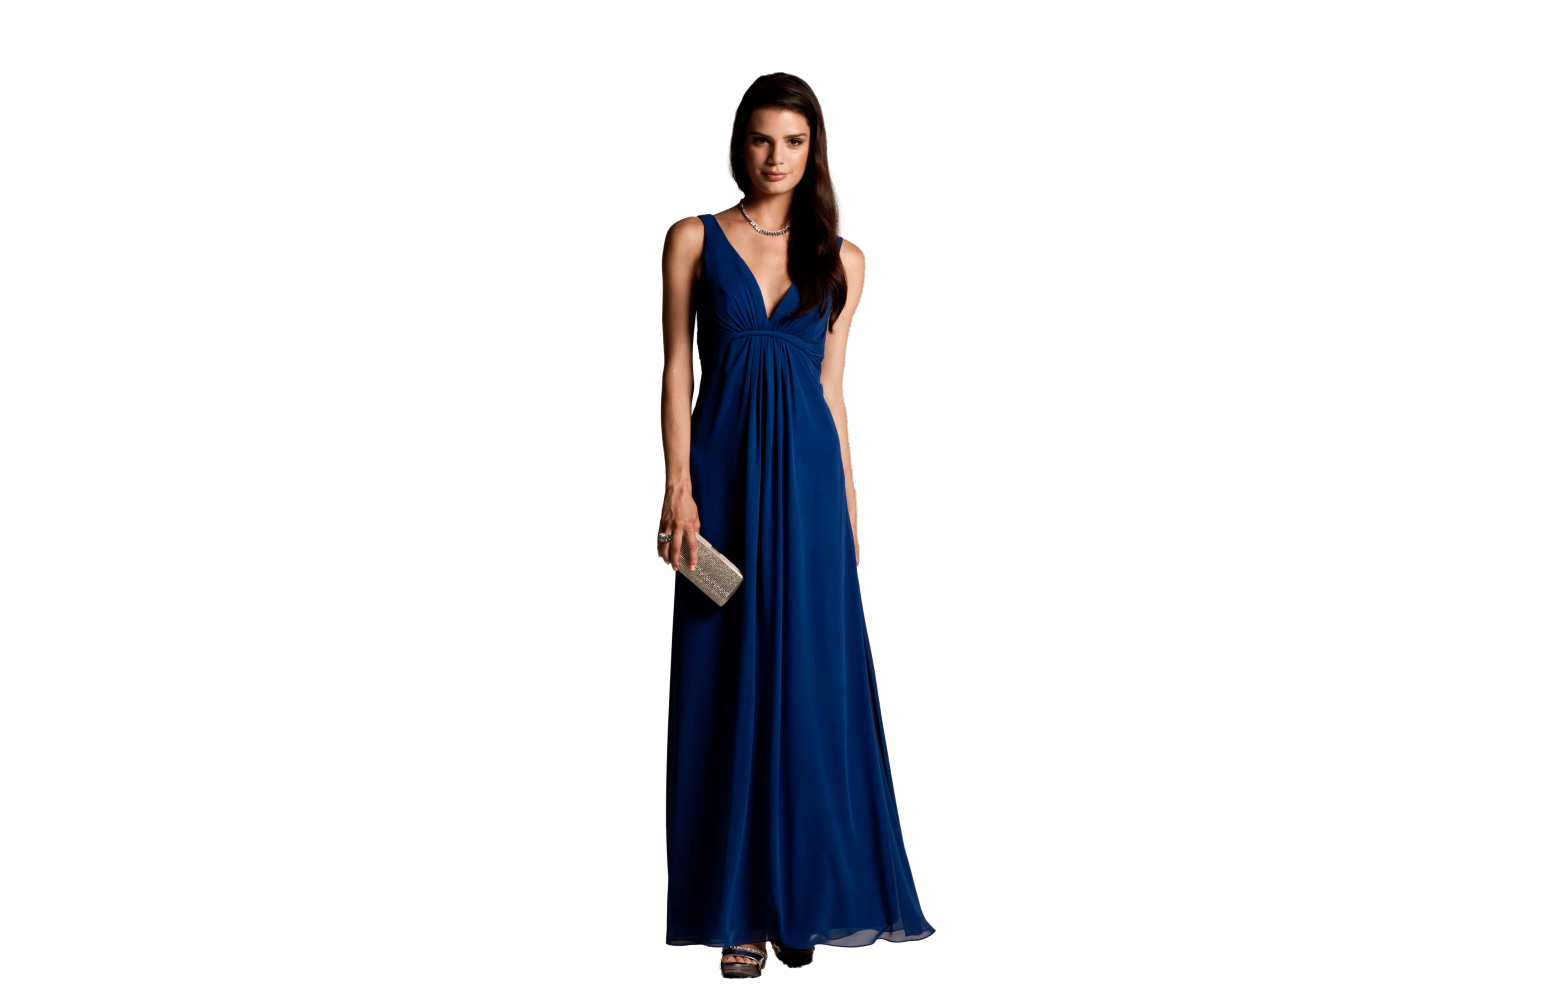 Blue bridesmaid dresses blue bridesmaid desses will look great blue bridesmaid dresses online amelia blue bridesmiad dresses online auatralia ombrellifo Gallery